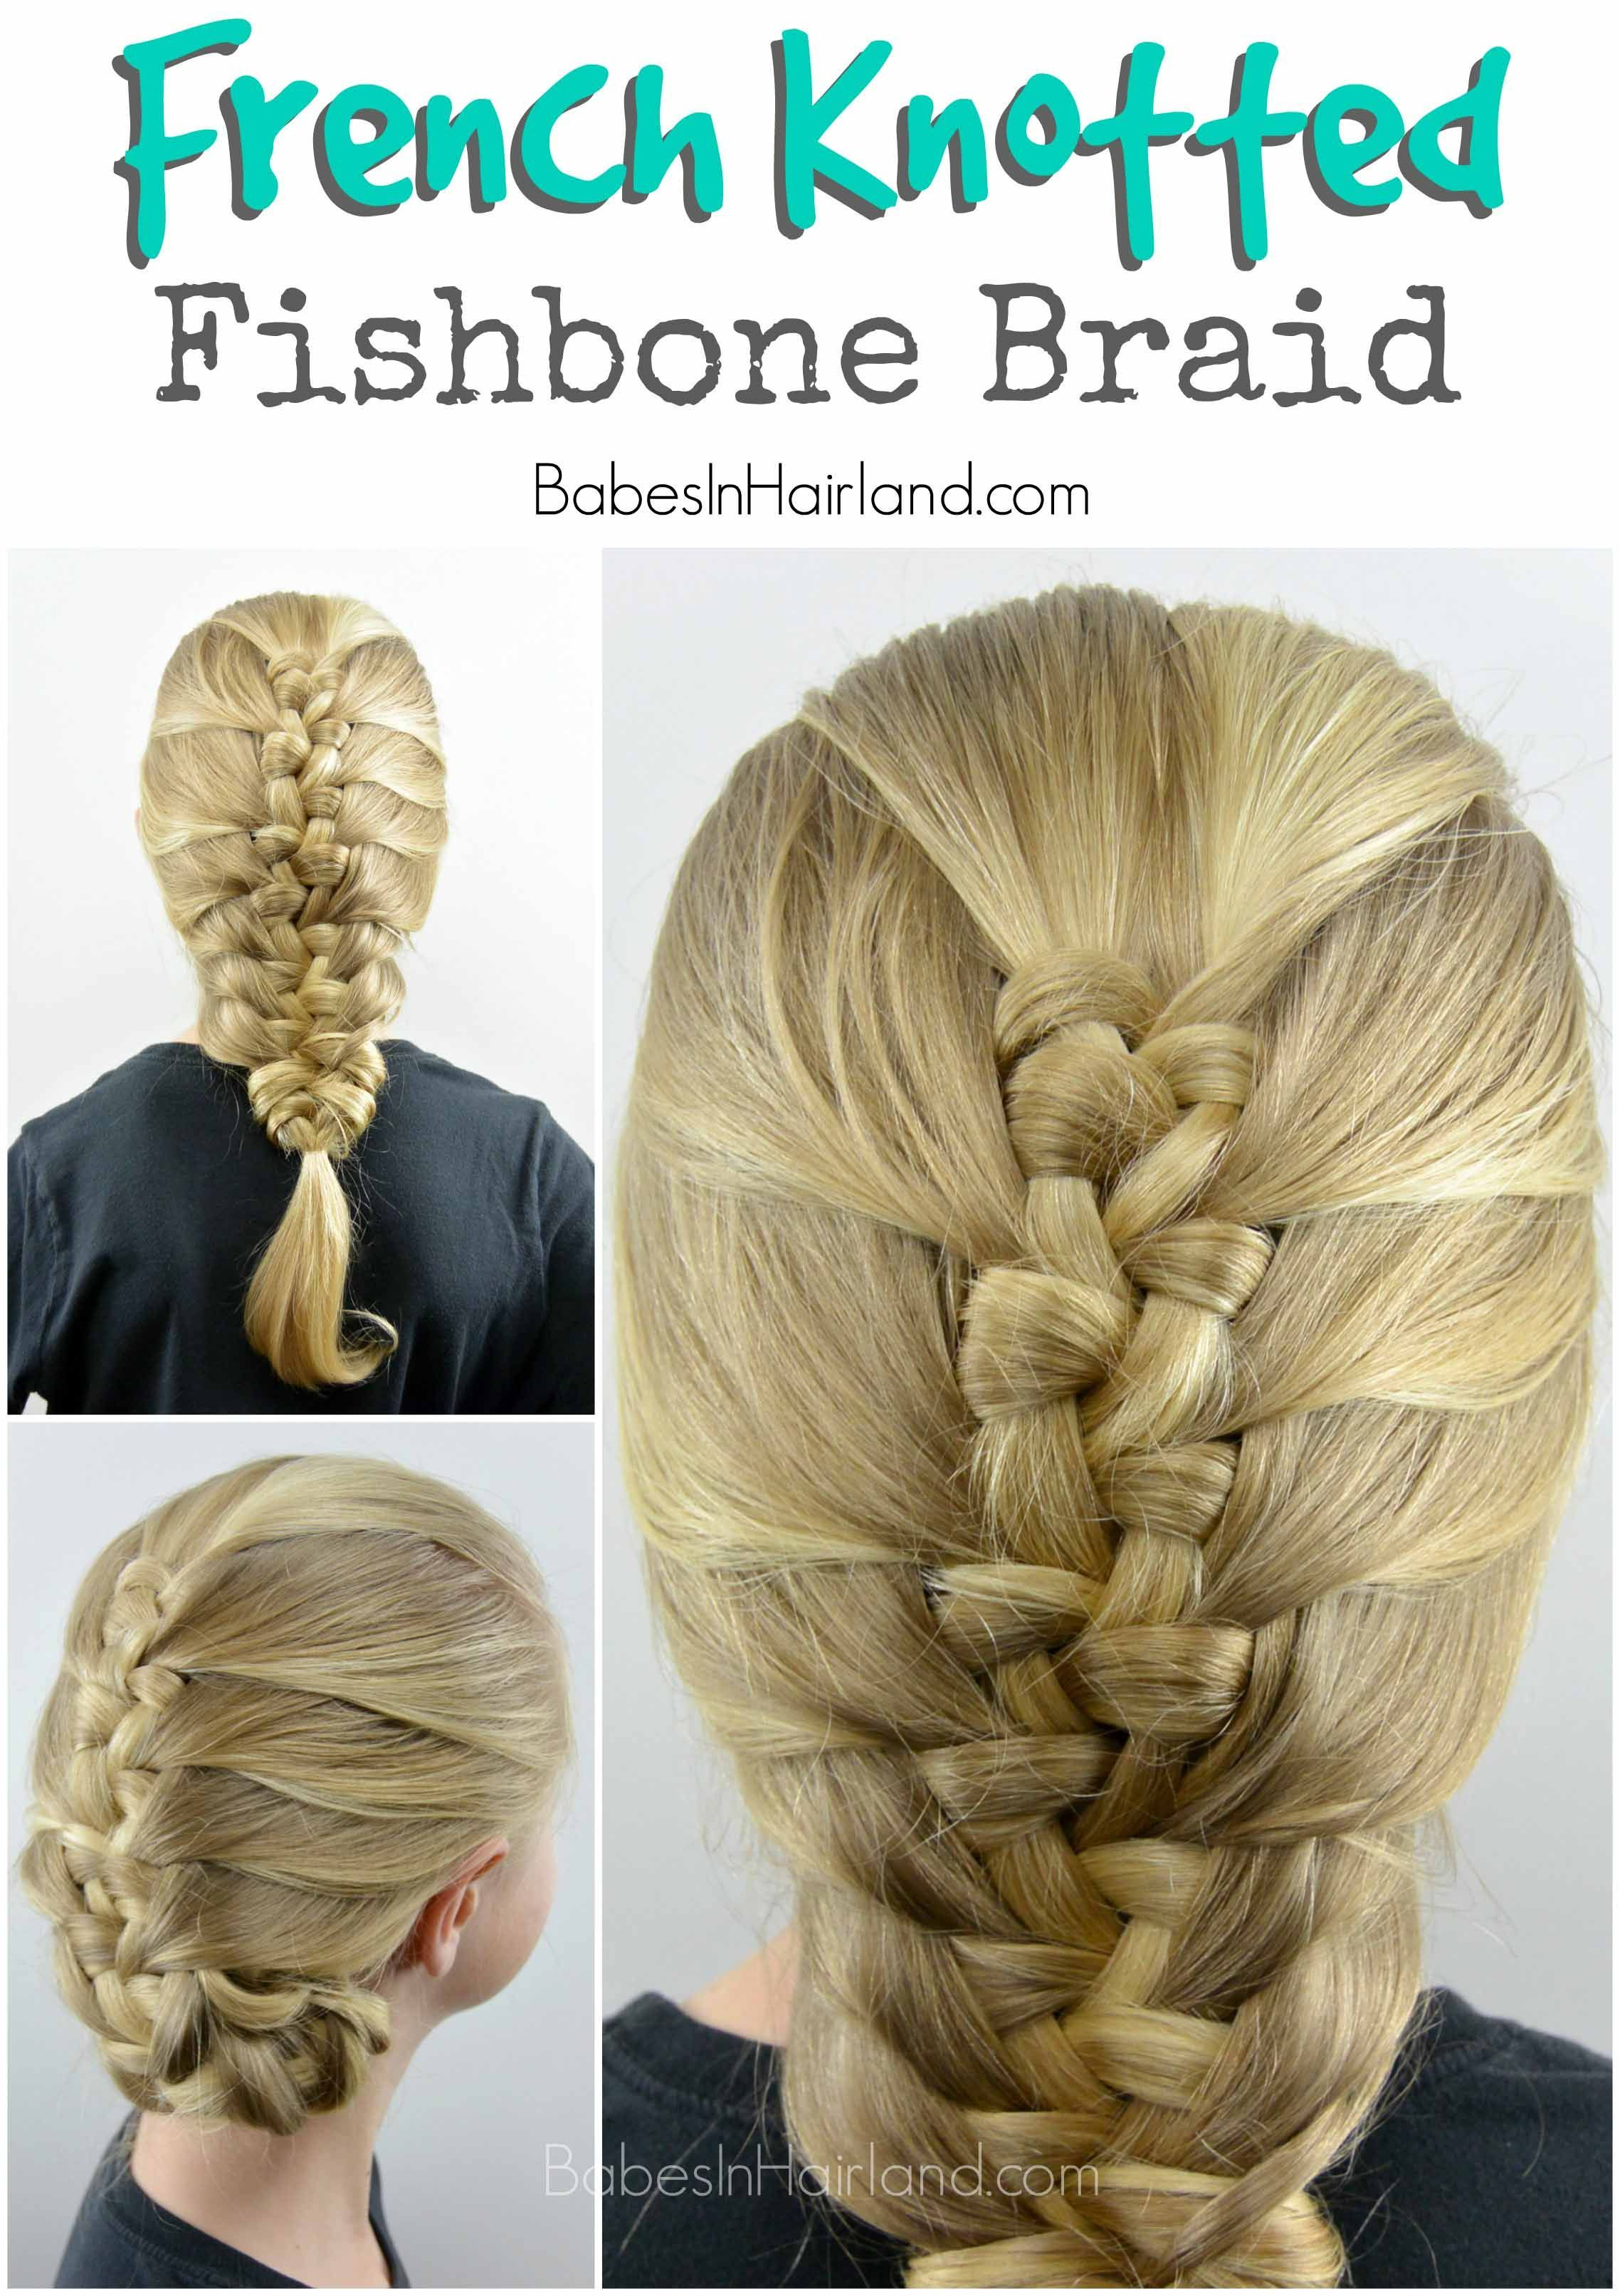 Babesinhairlandcom Hairstyle Fishbone Fishtail Knotted French Braid Knots Fromfrench Knotted Fishbo Fishbone Braid Braided Hairstyles Long Hair Styles